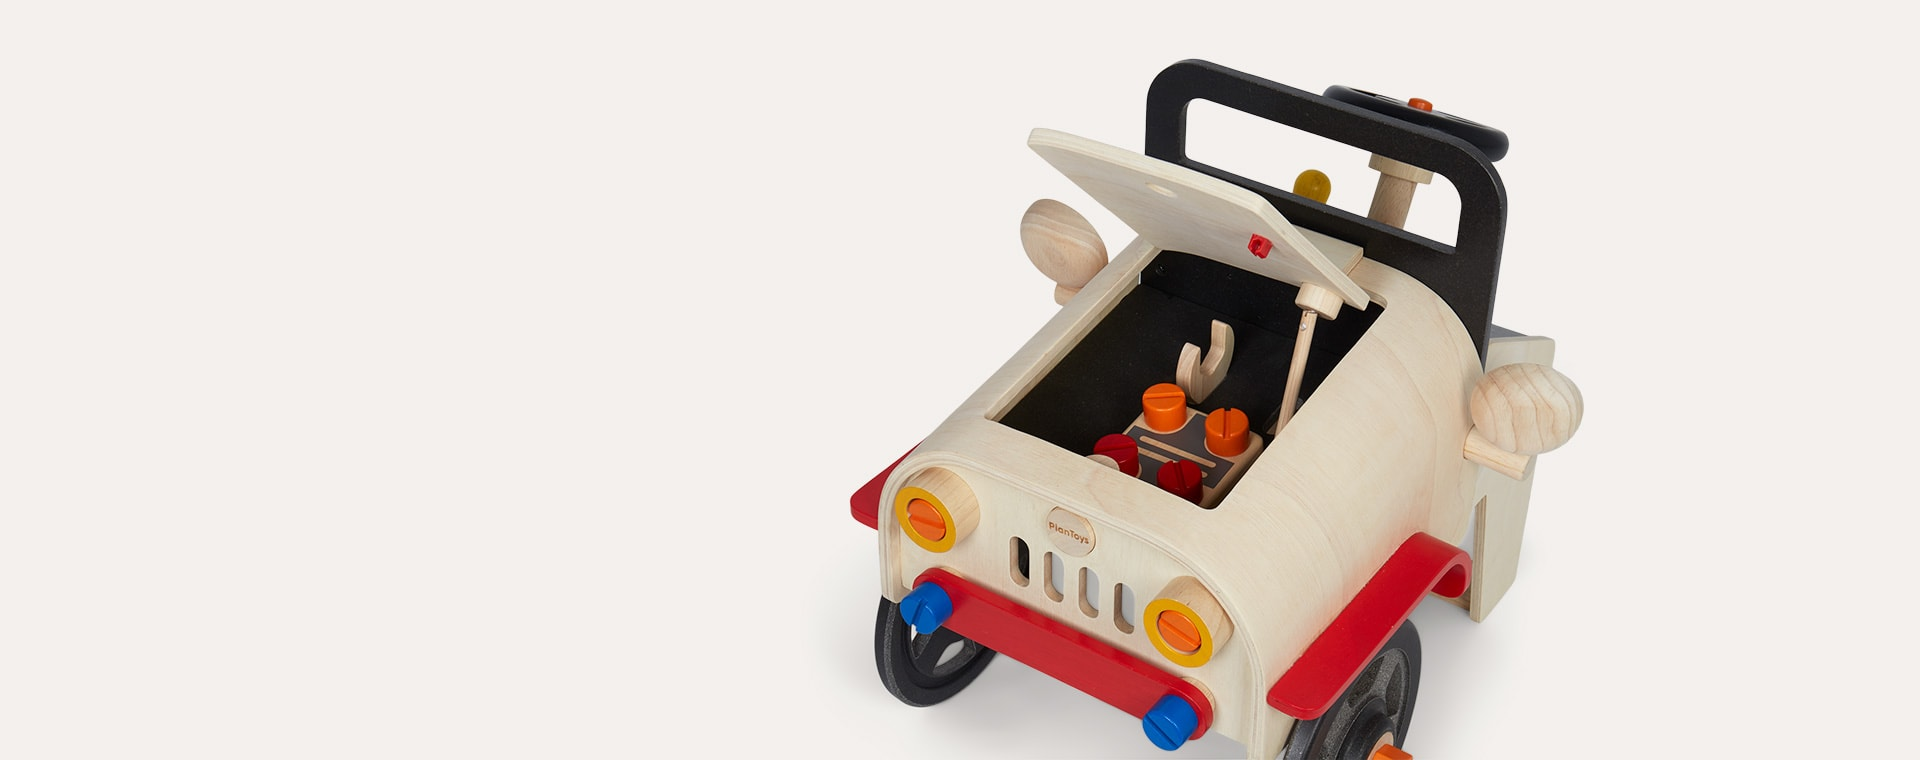 Neutral Plan Toys Motor Mechanic